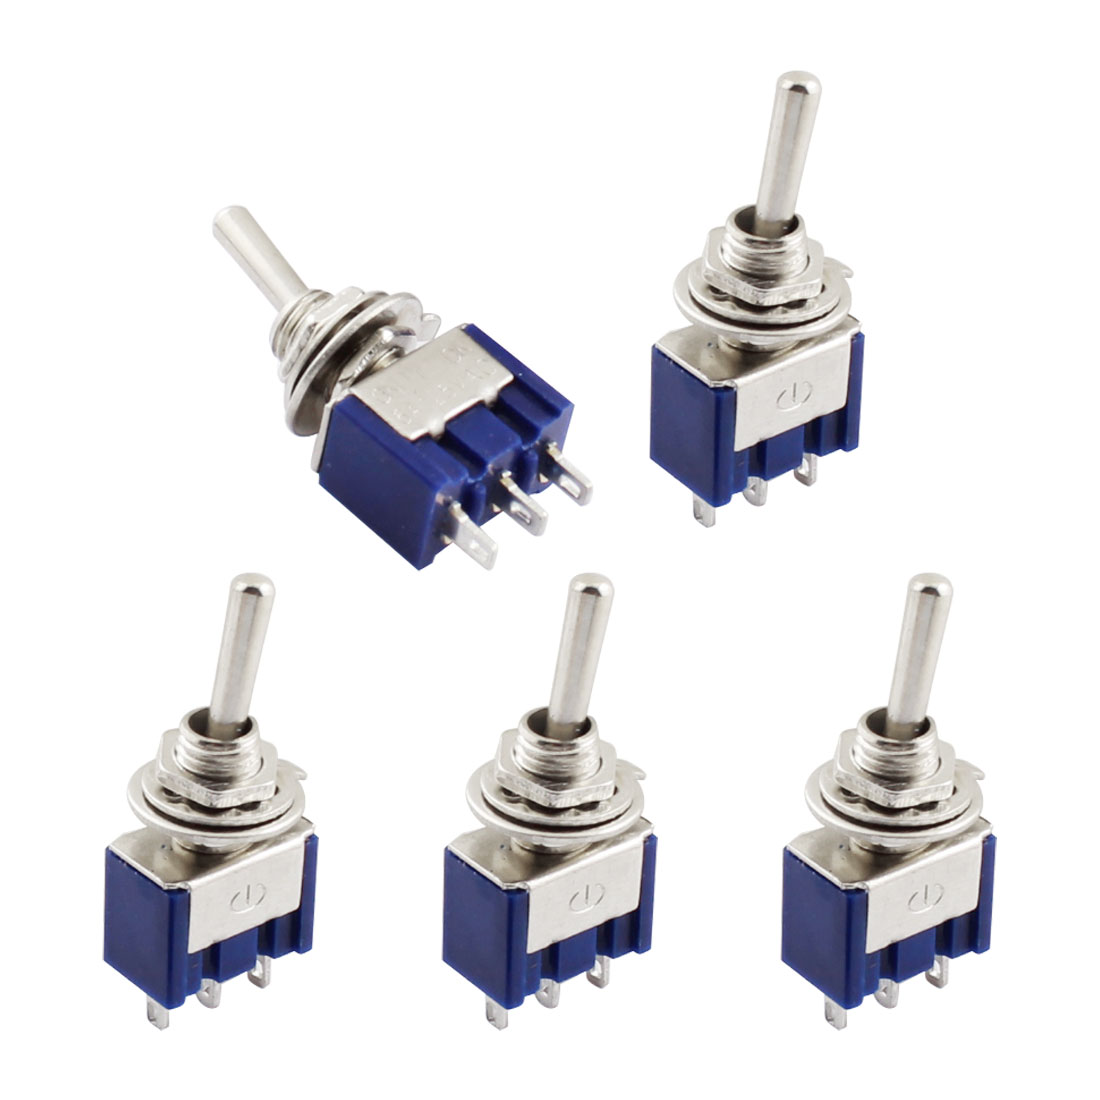 5Pcs Blue Tread Mounting 3 Terminals ON-OFF-ON Mini Toggle Switch 6A AC125V